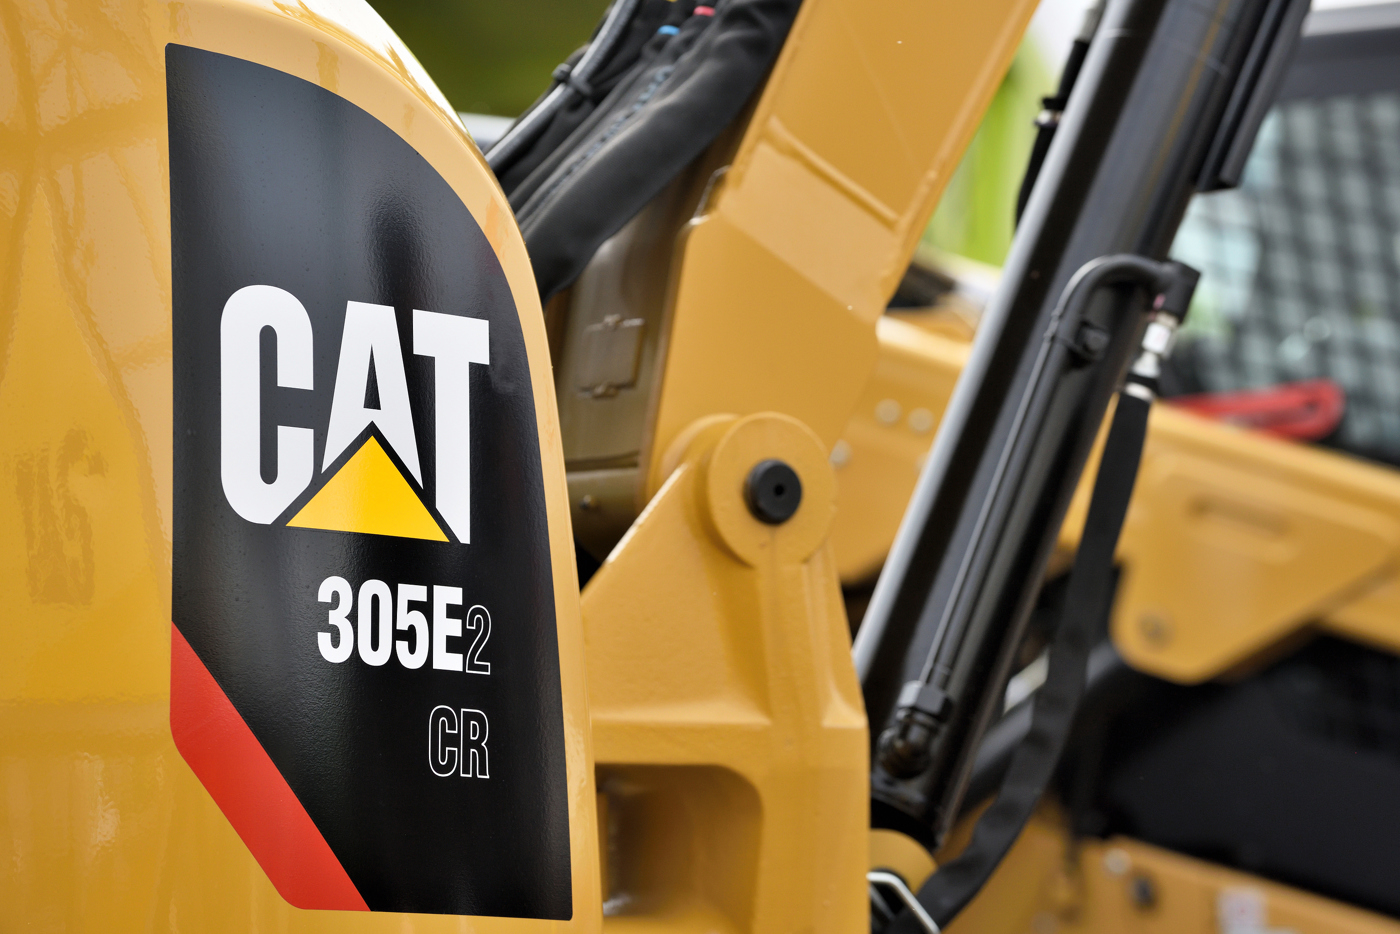 Caterpillar CAT stock